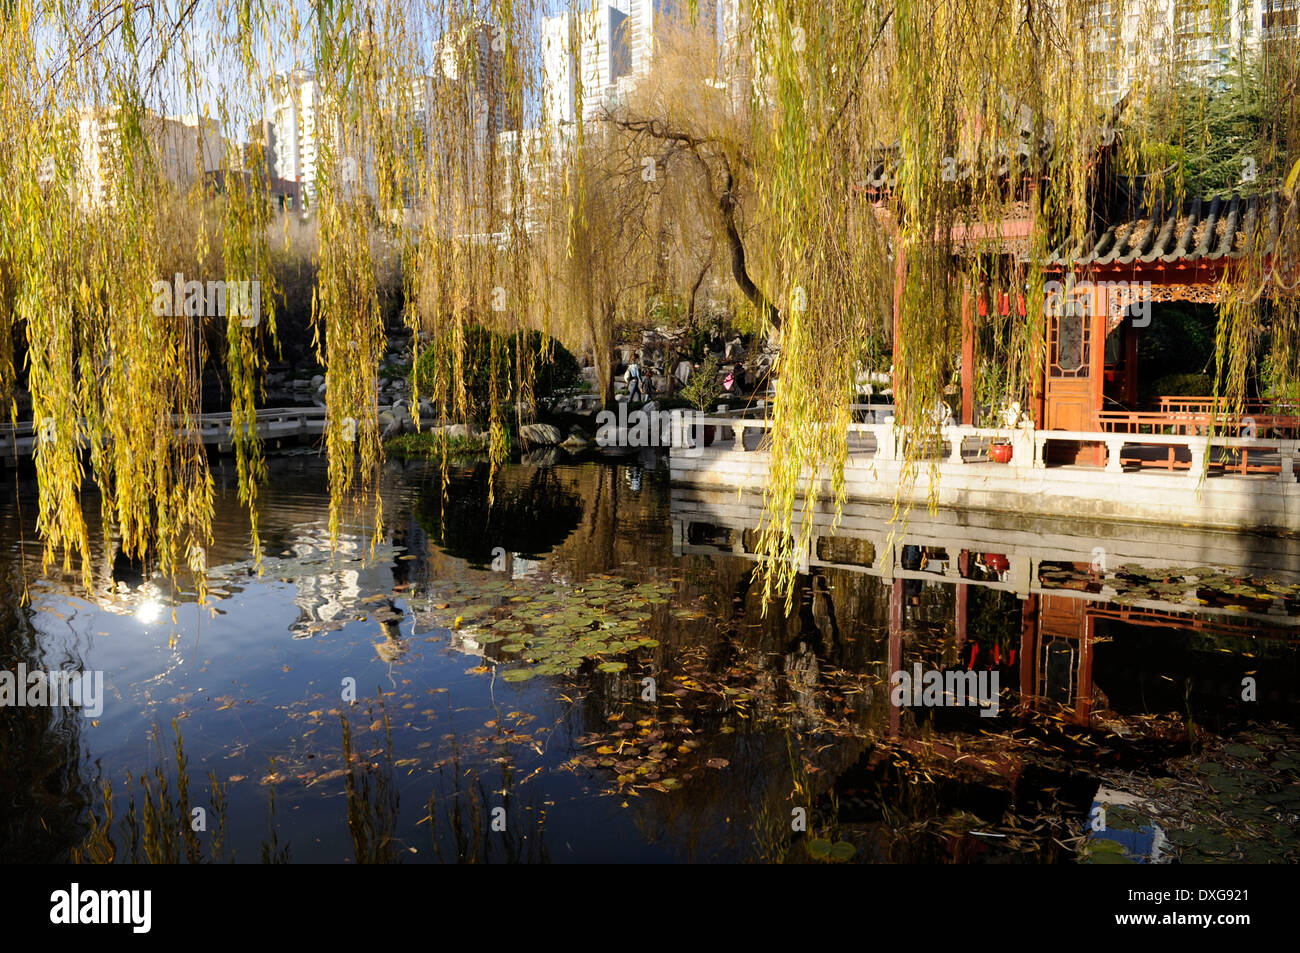 Chinese Garden Sydney Stock Photos & Chinese Garden Sydney Stock ...